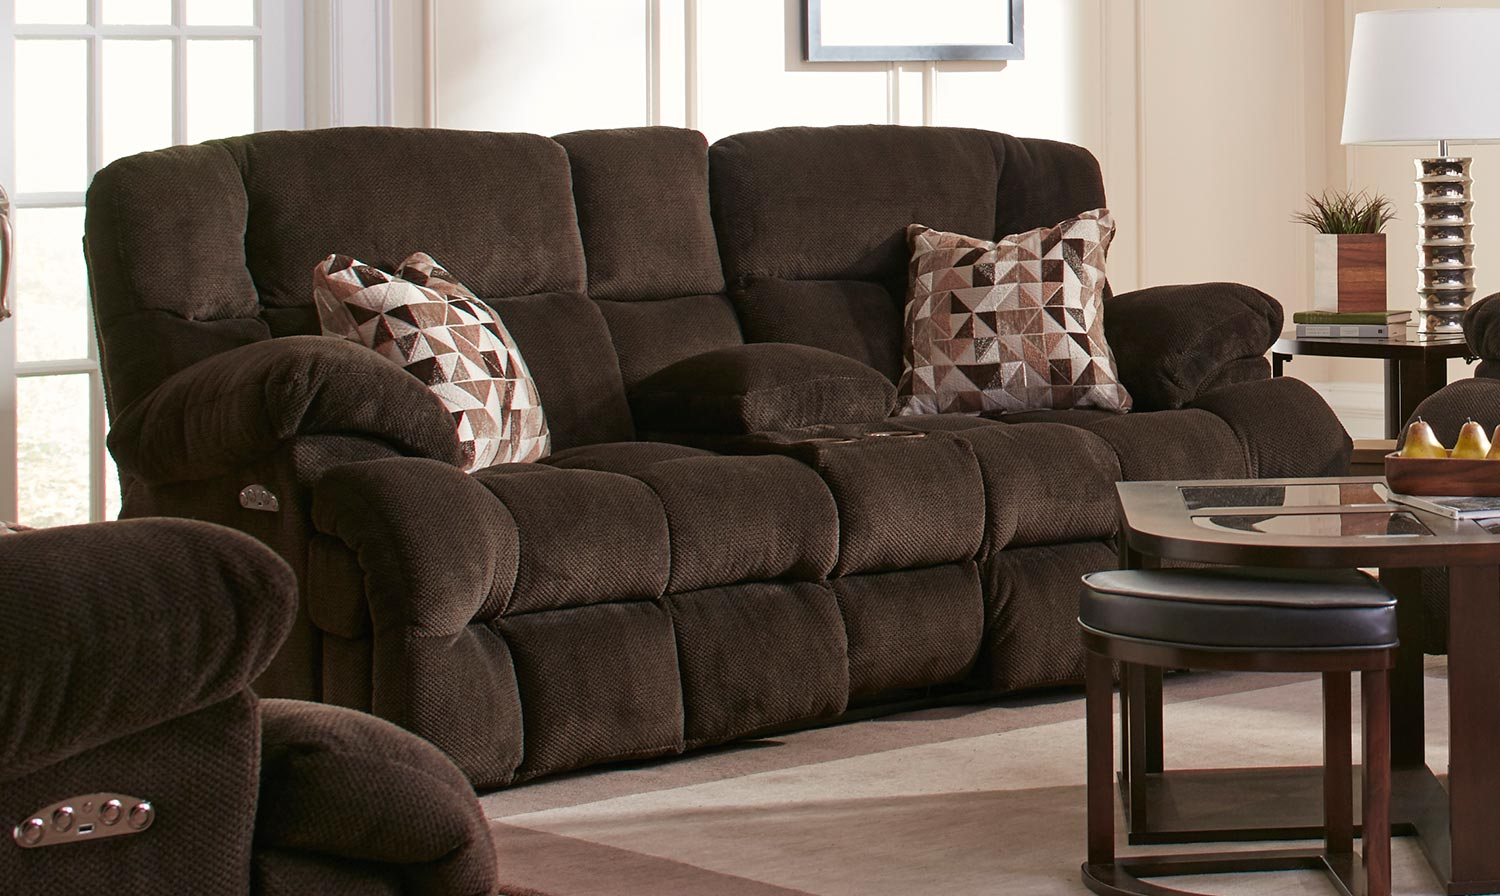 ip godiva sofa com reclining catnapper impulse walmart loveseat set